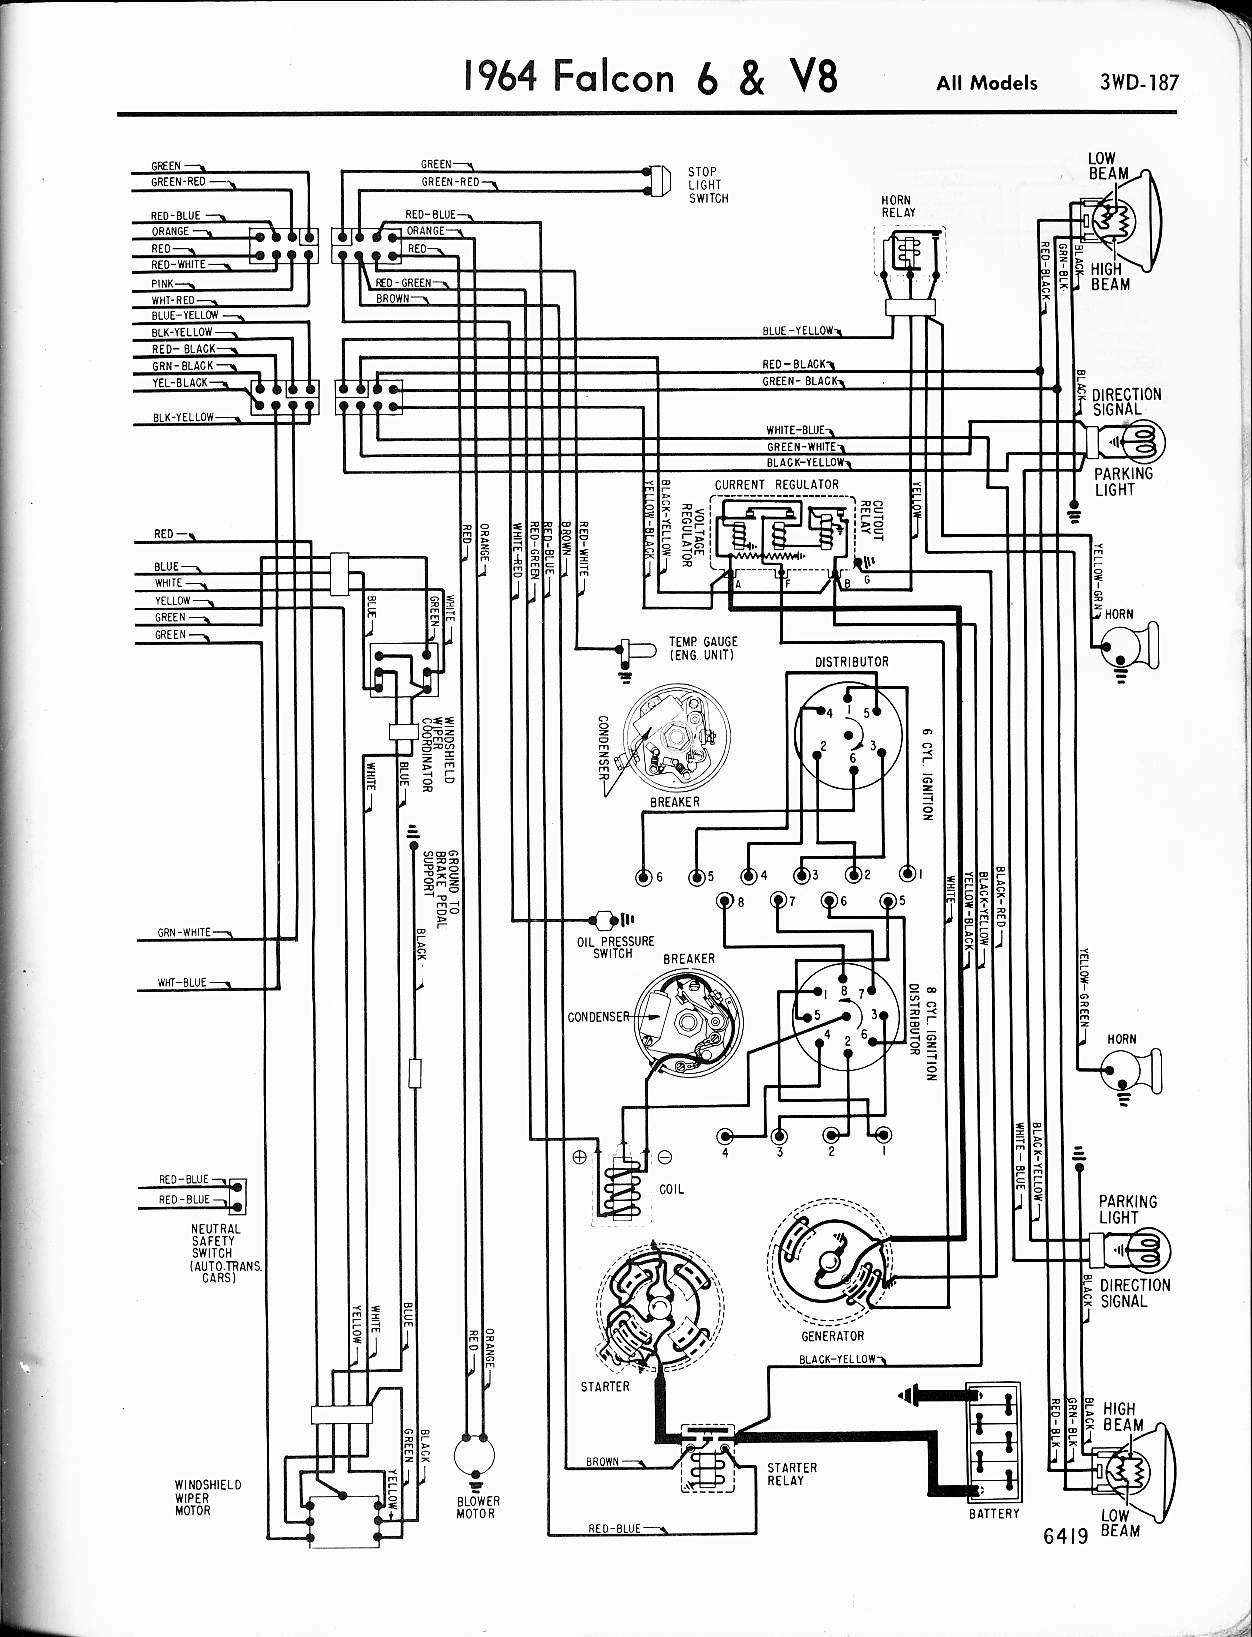 1964 ford falcon ignition wiring diagram aprBtki 1964 ford falcon ignition wiring diagram image details au falcon engine wiring diagram at bakdesigns.co